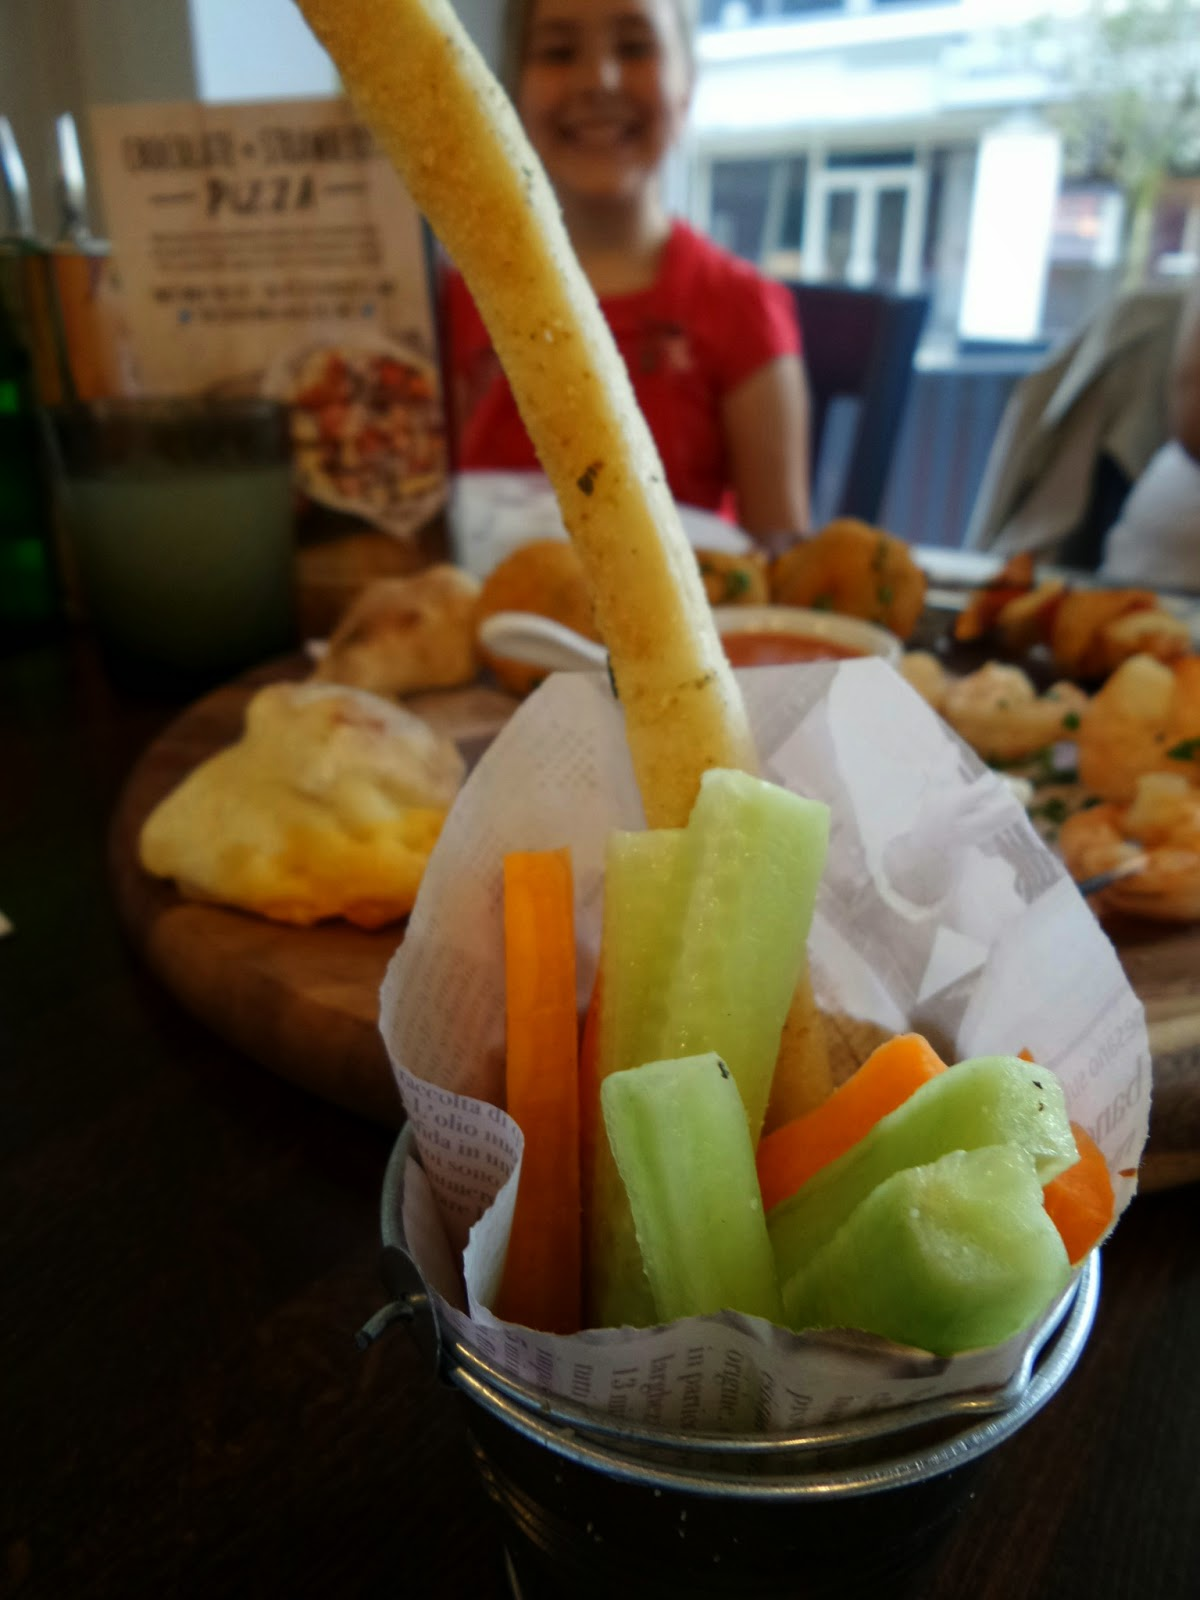 Top Ender and the Zizzi Bambini Starter of Carrots, Cucumber and Dough Stick